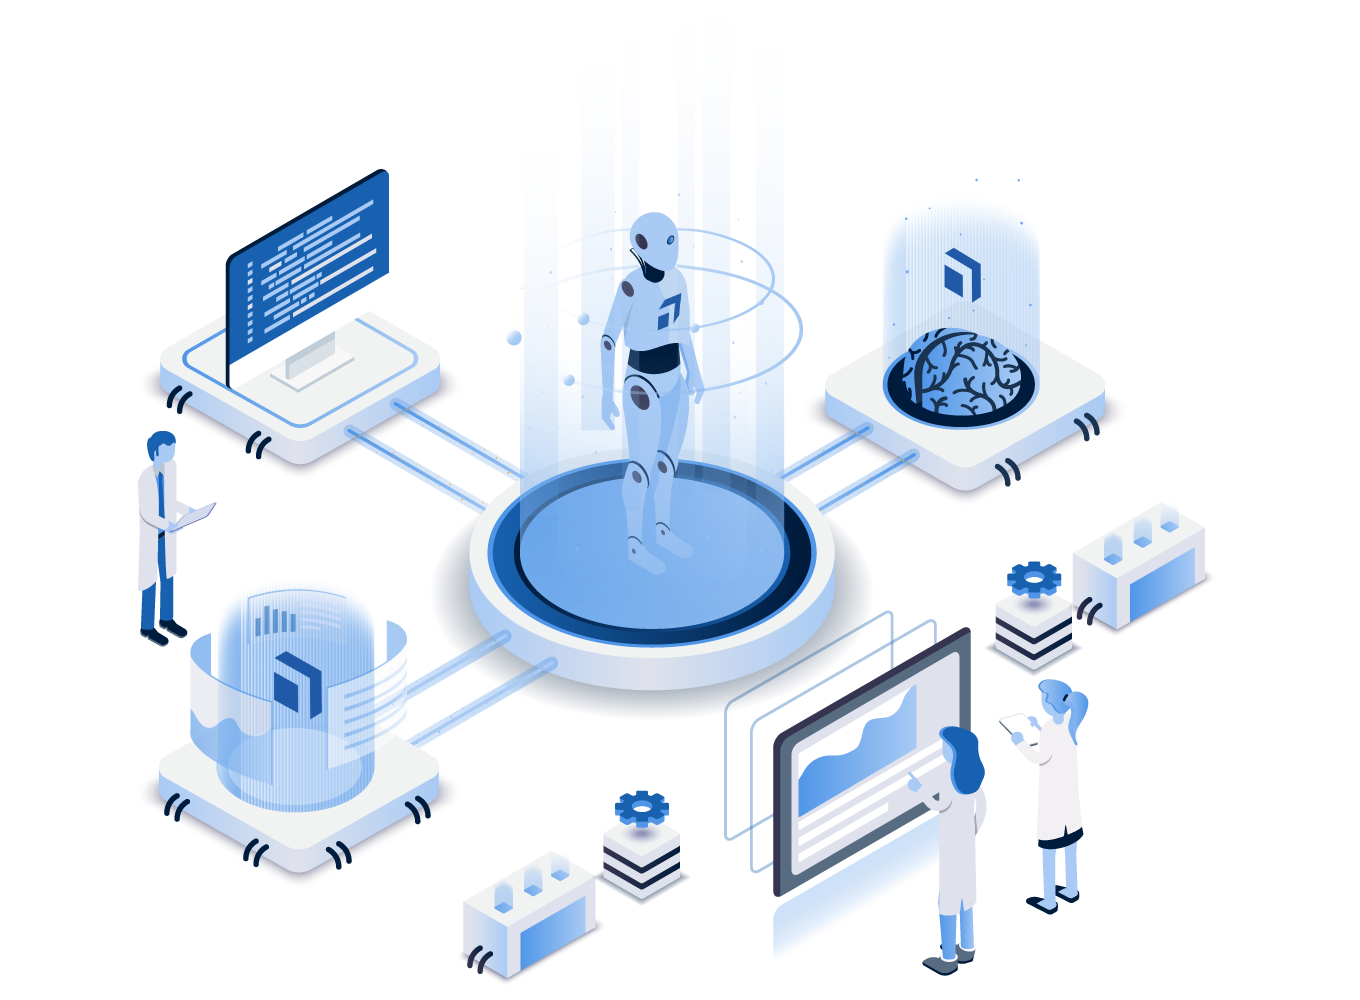 Continuous testing with artificial intelligence from Tricentis